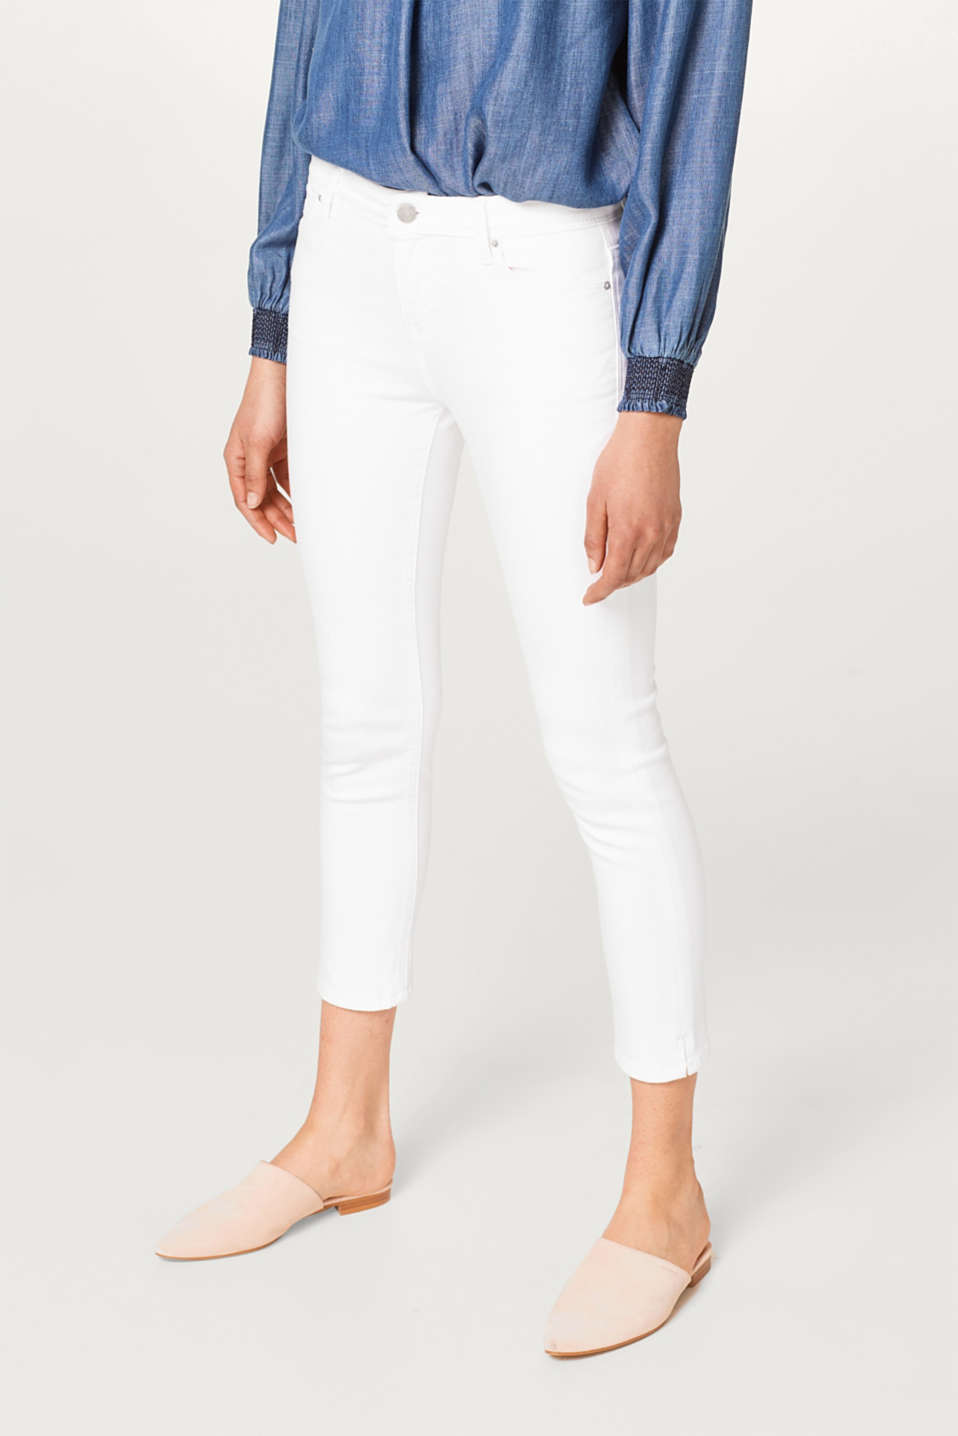 Esprit - Stretch-Jeans in sommerlicher Capri-Länge